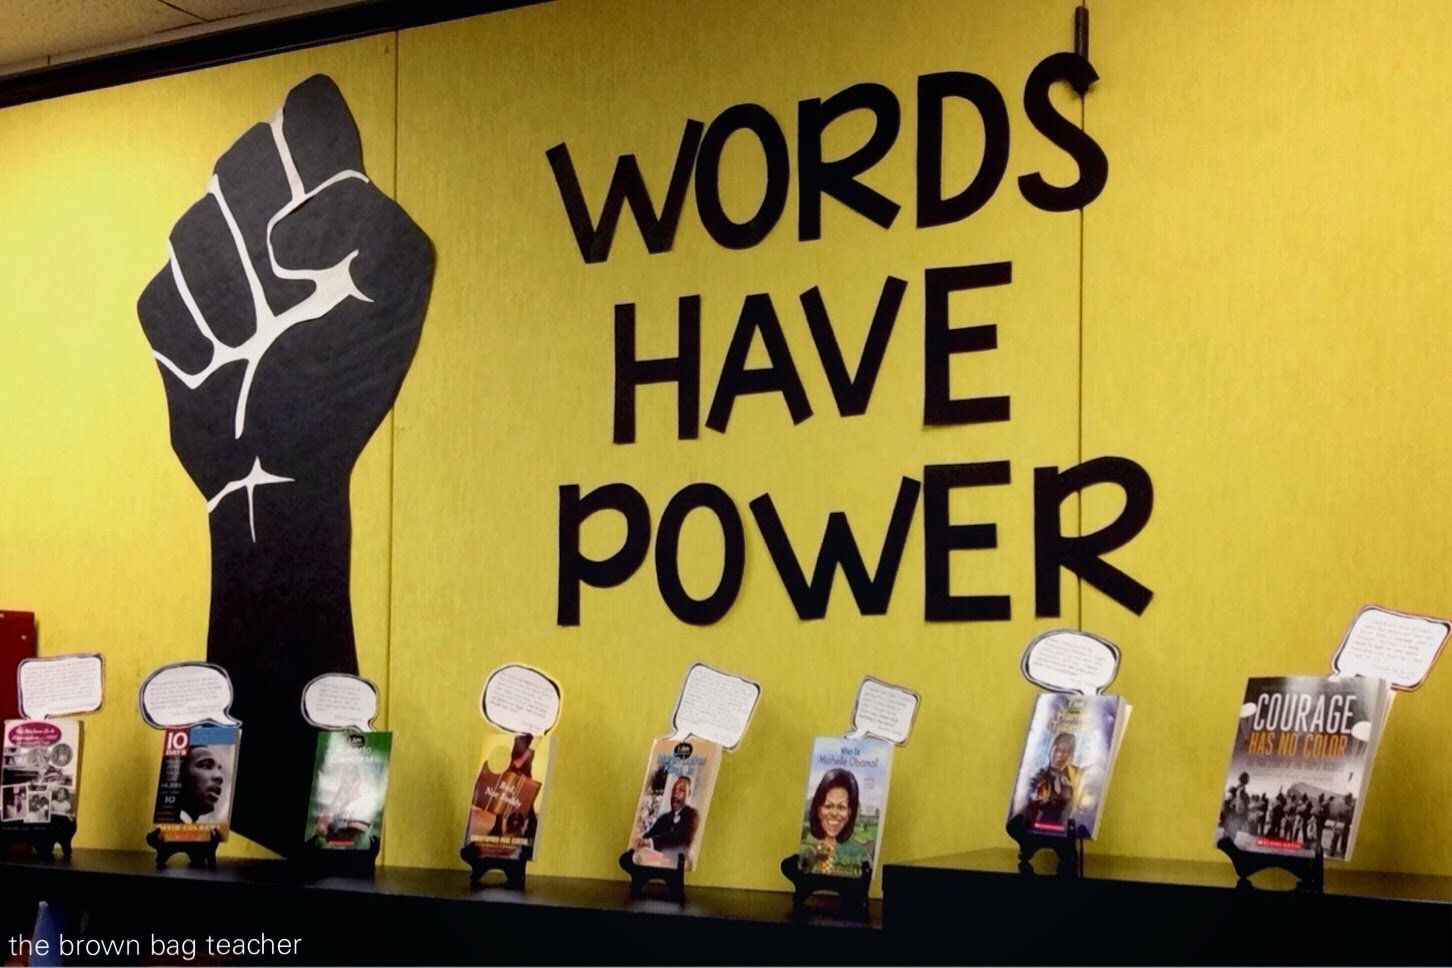 10 Fantastic Ideas For Black History Month words have power book display the brown bag teacher 2021